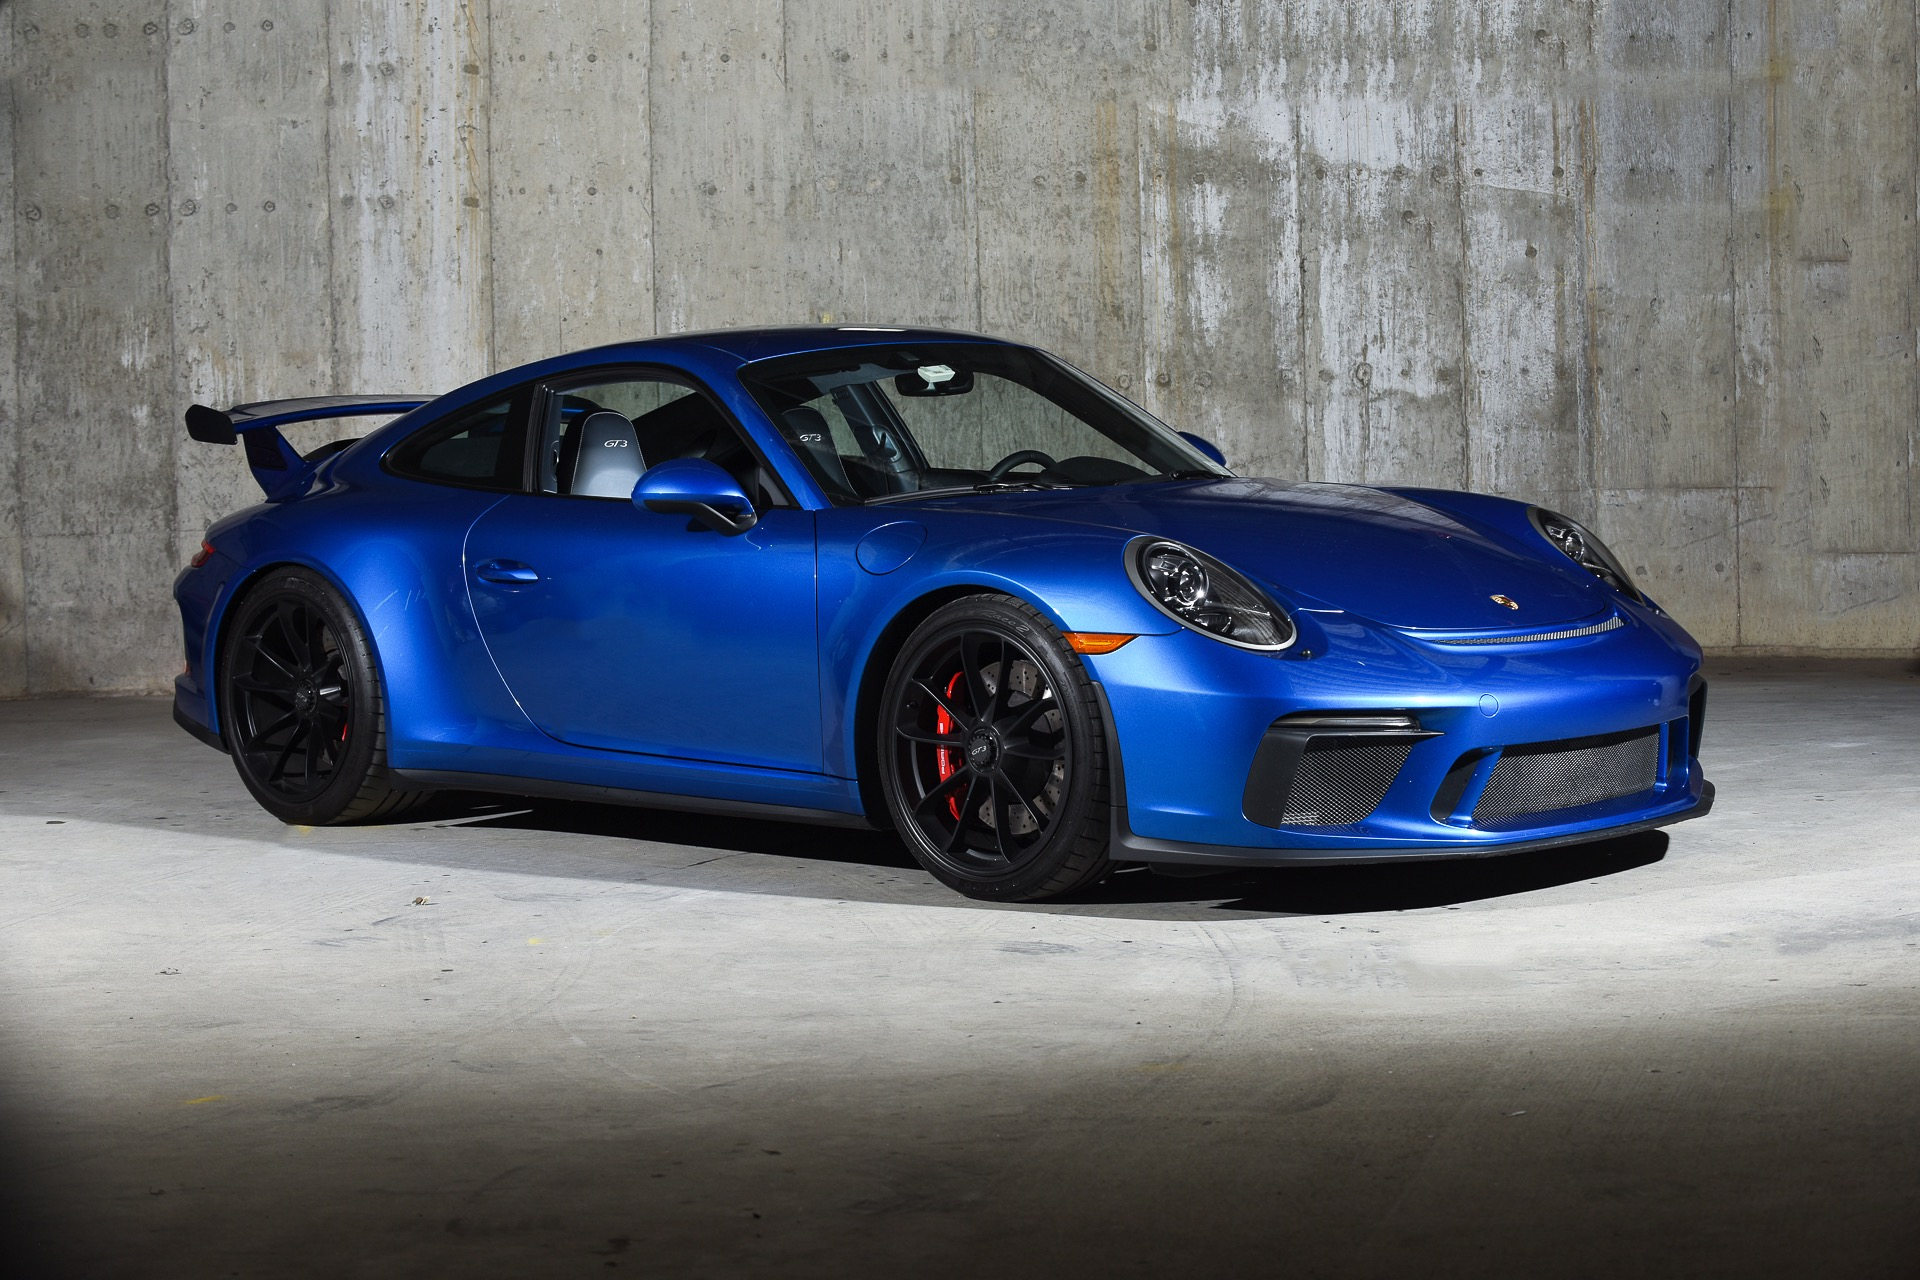 Used Car Down Payment Calculator >> 2018 Porsche 911 GT3 Stock # 99C for sale near Valley Stream, NY | NY Porsche Dealer